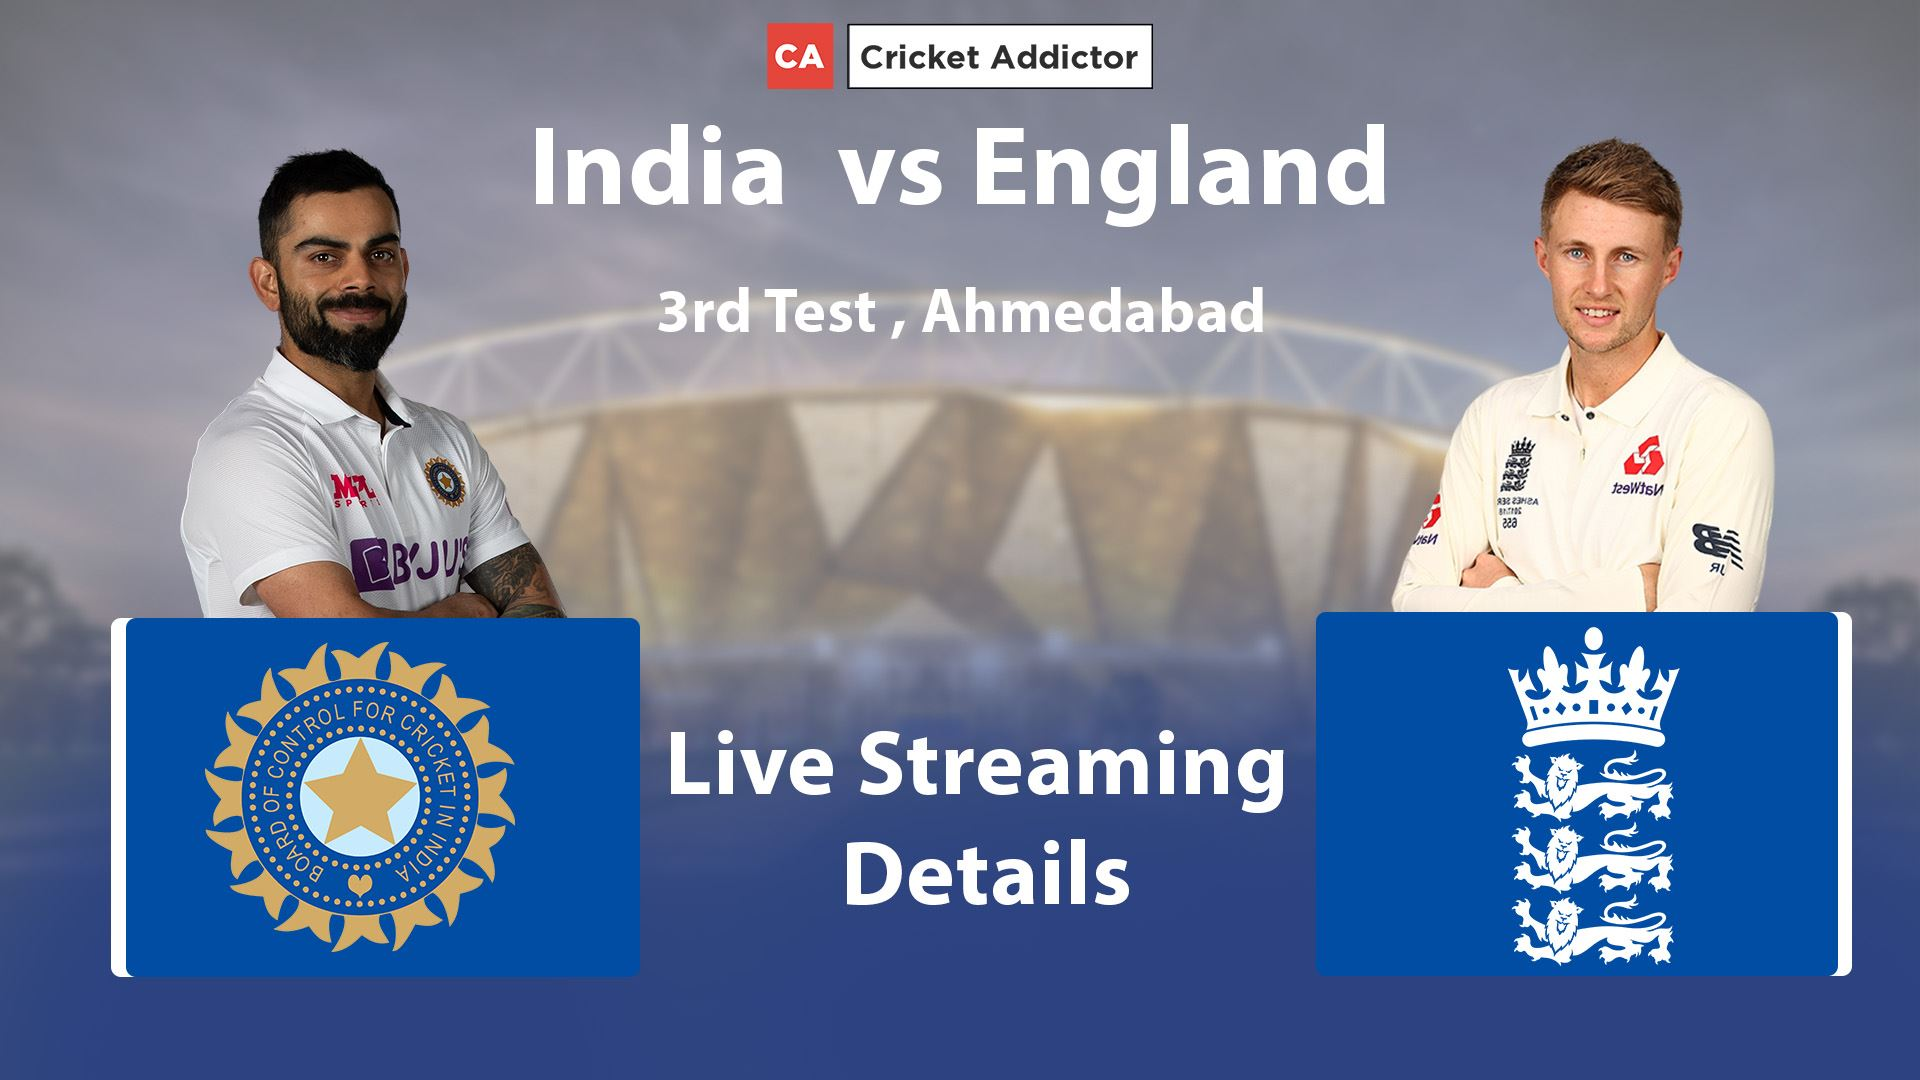 India vs England 2021, 3rd Test: When And Where To Watch, Live Streaming Details